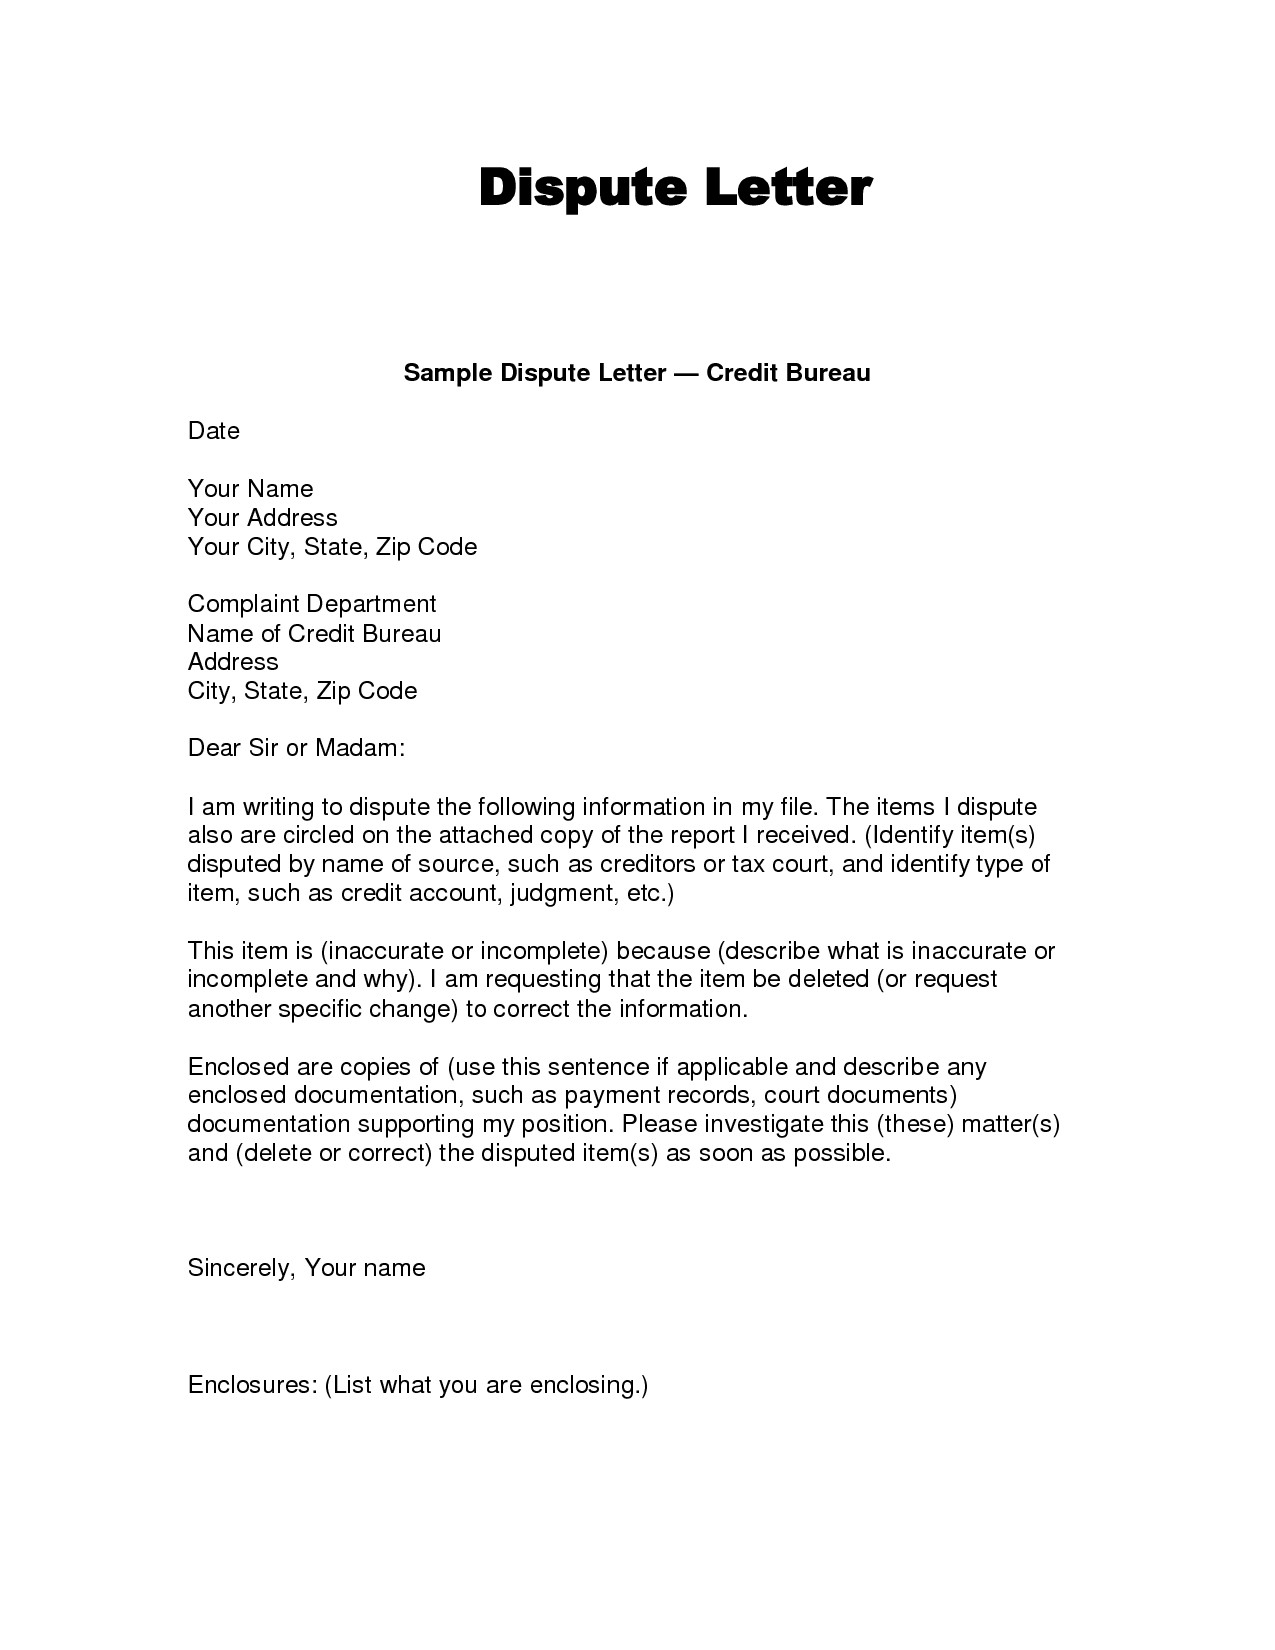 Repossession Dispute Letter Template - Letter format for Change Department Fresh Sample Credit Report